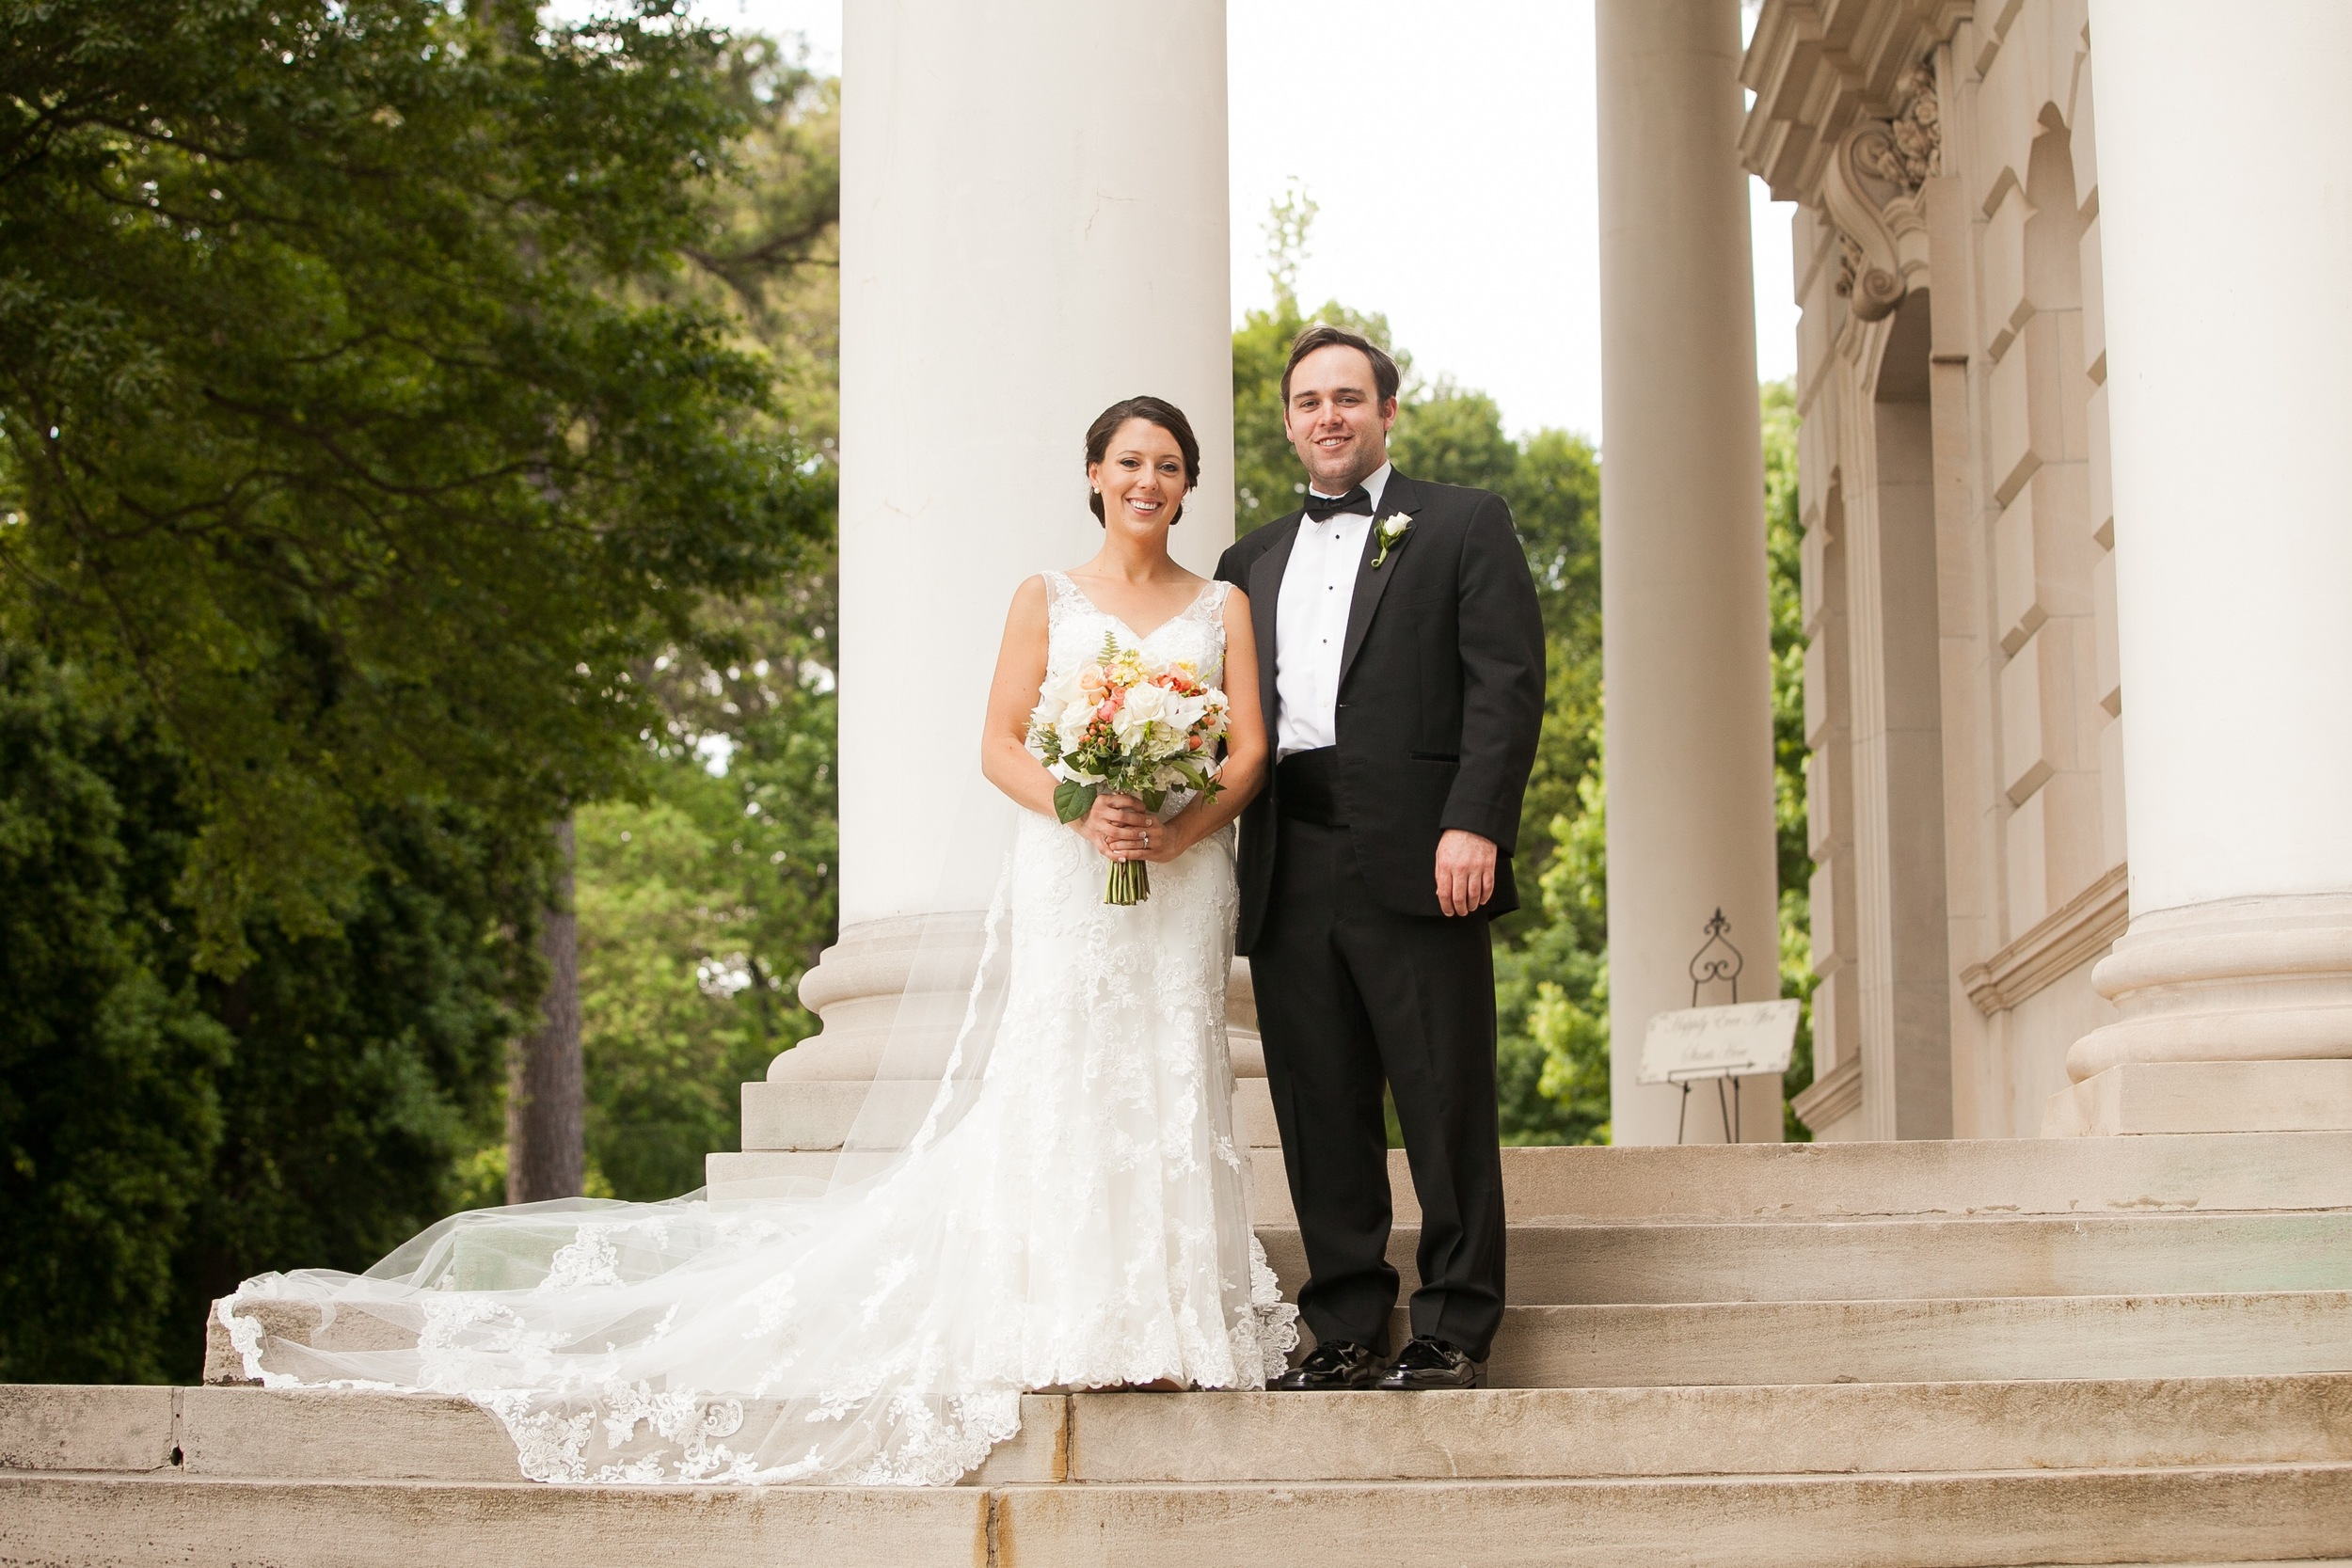 Wedding - Rebecca and Will Anderson.JPG